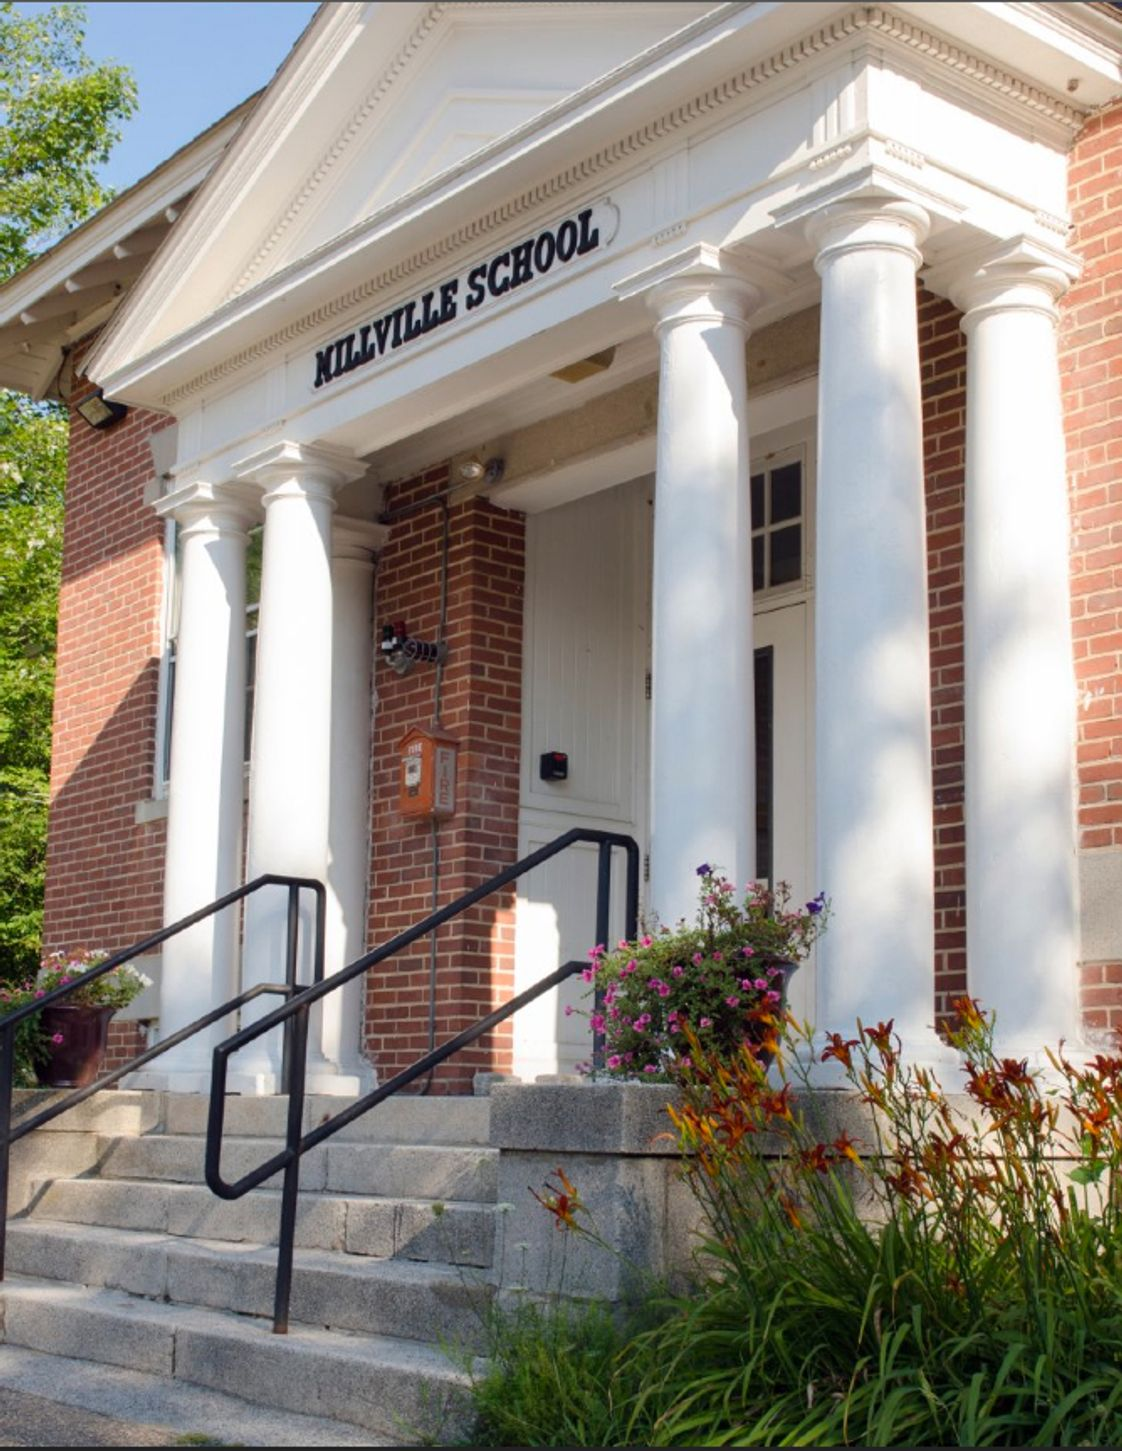 Parker Academy Photo - Parker Academy - Millville Building Location: 2 Fisk Rd, Concord, NH